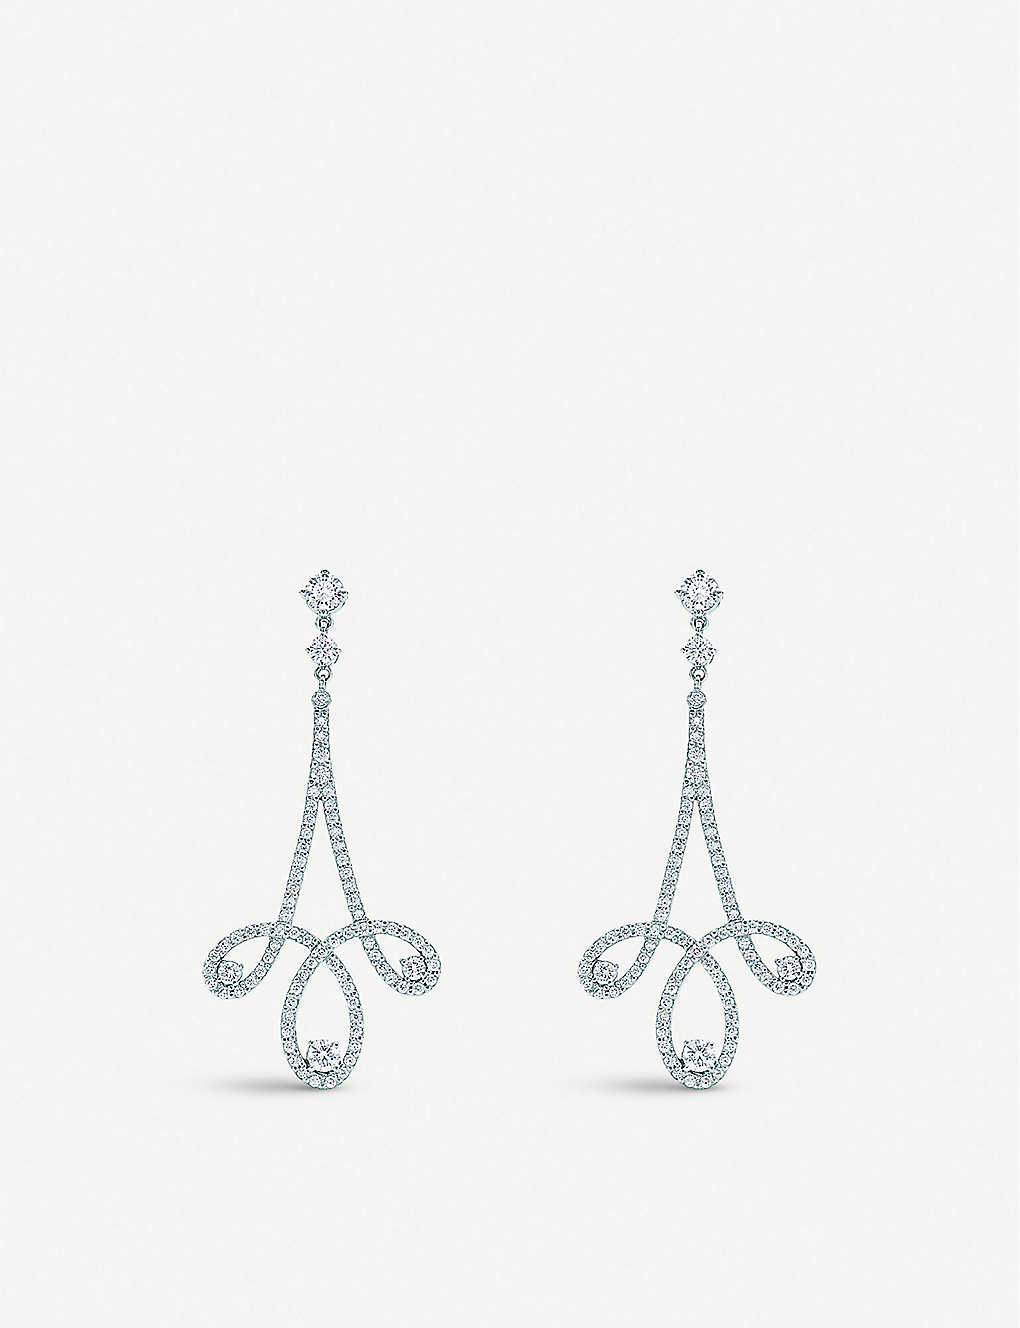 c154989e1 TIFFANY & CO Tiffany Enchant® scroll earrings in platinum with diamonds